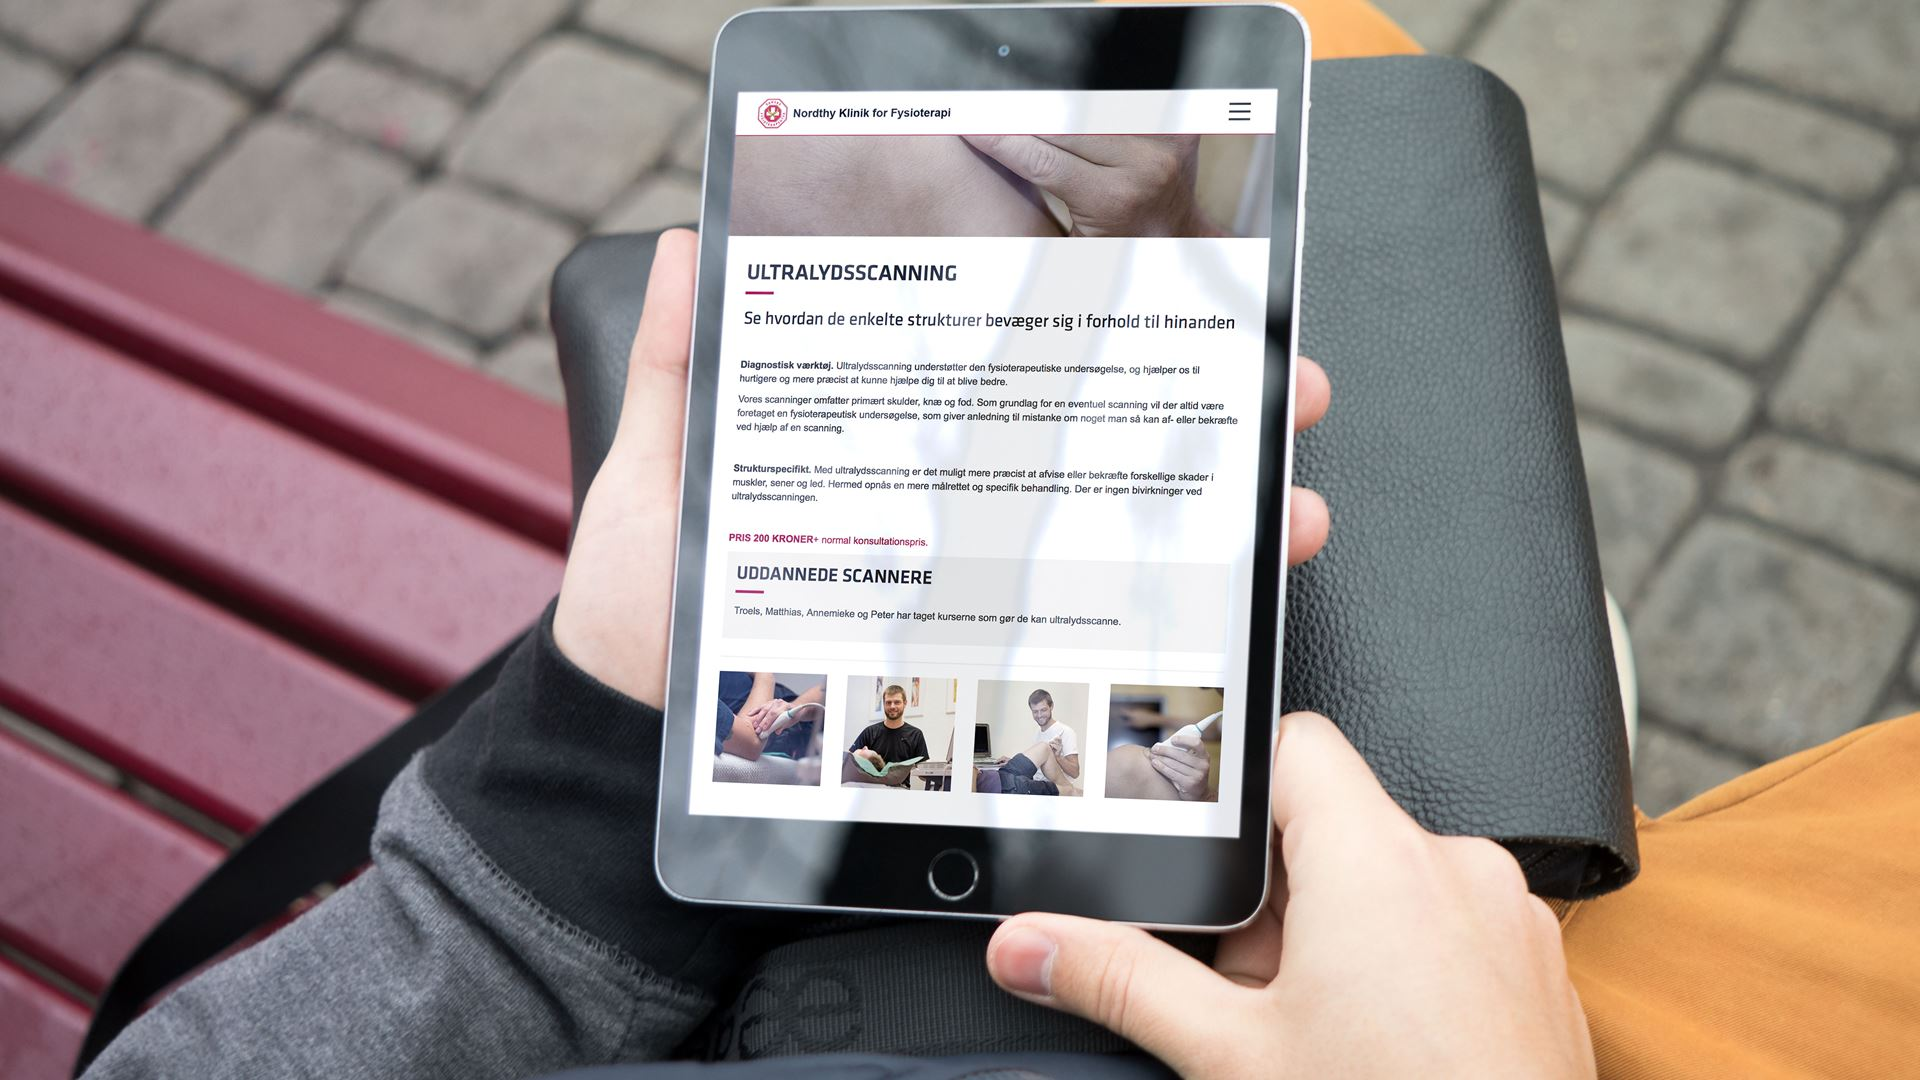 Nordthy Klinik for Fysioterapi website iPad